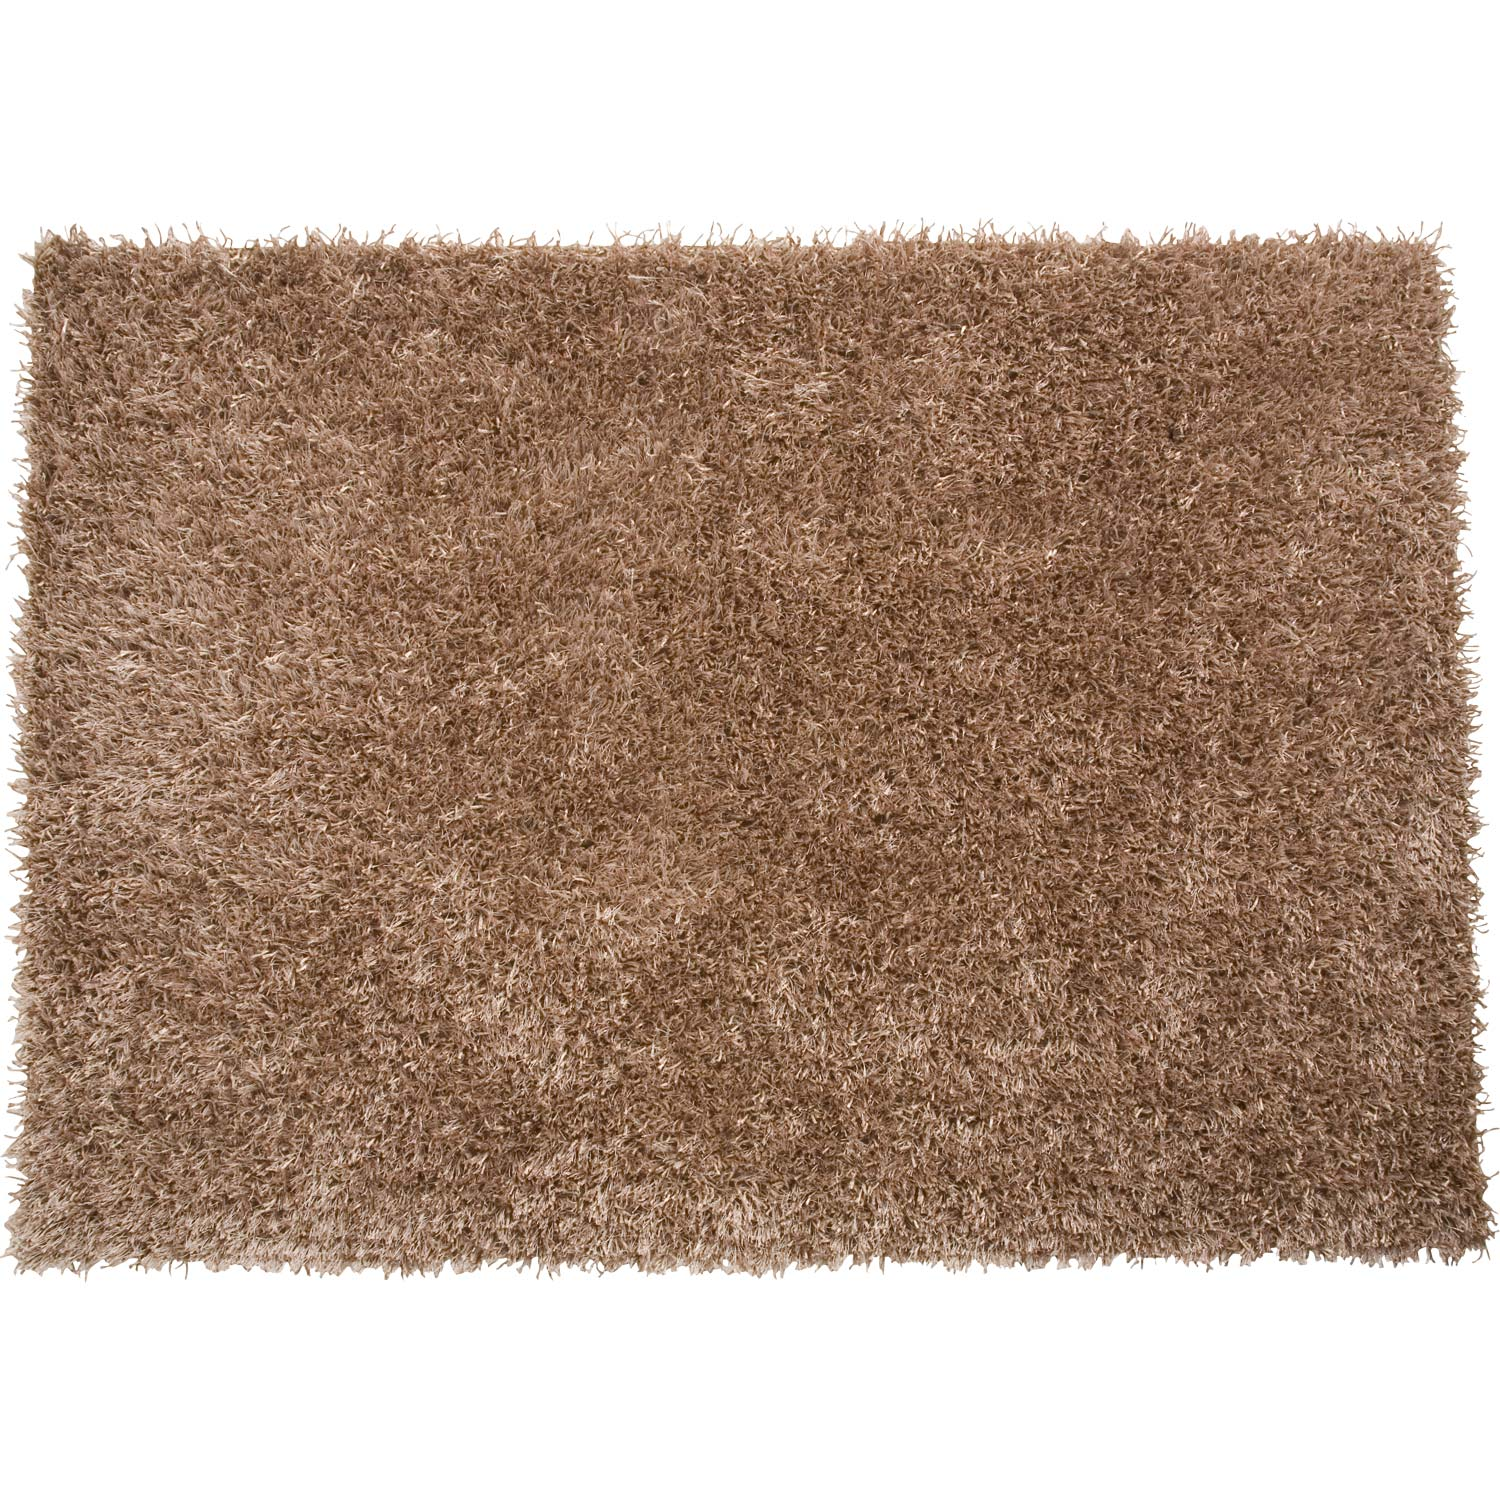 tapis shaggy lilou beige 170x120 cm leroy merlin. Black Bedroom Furniture Sets. Home Design Ideas